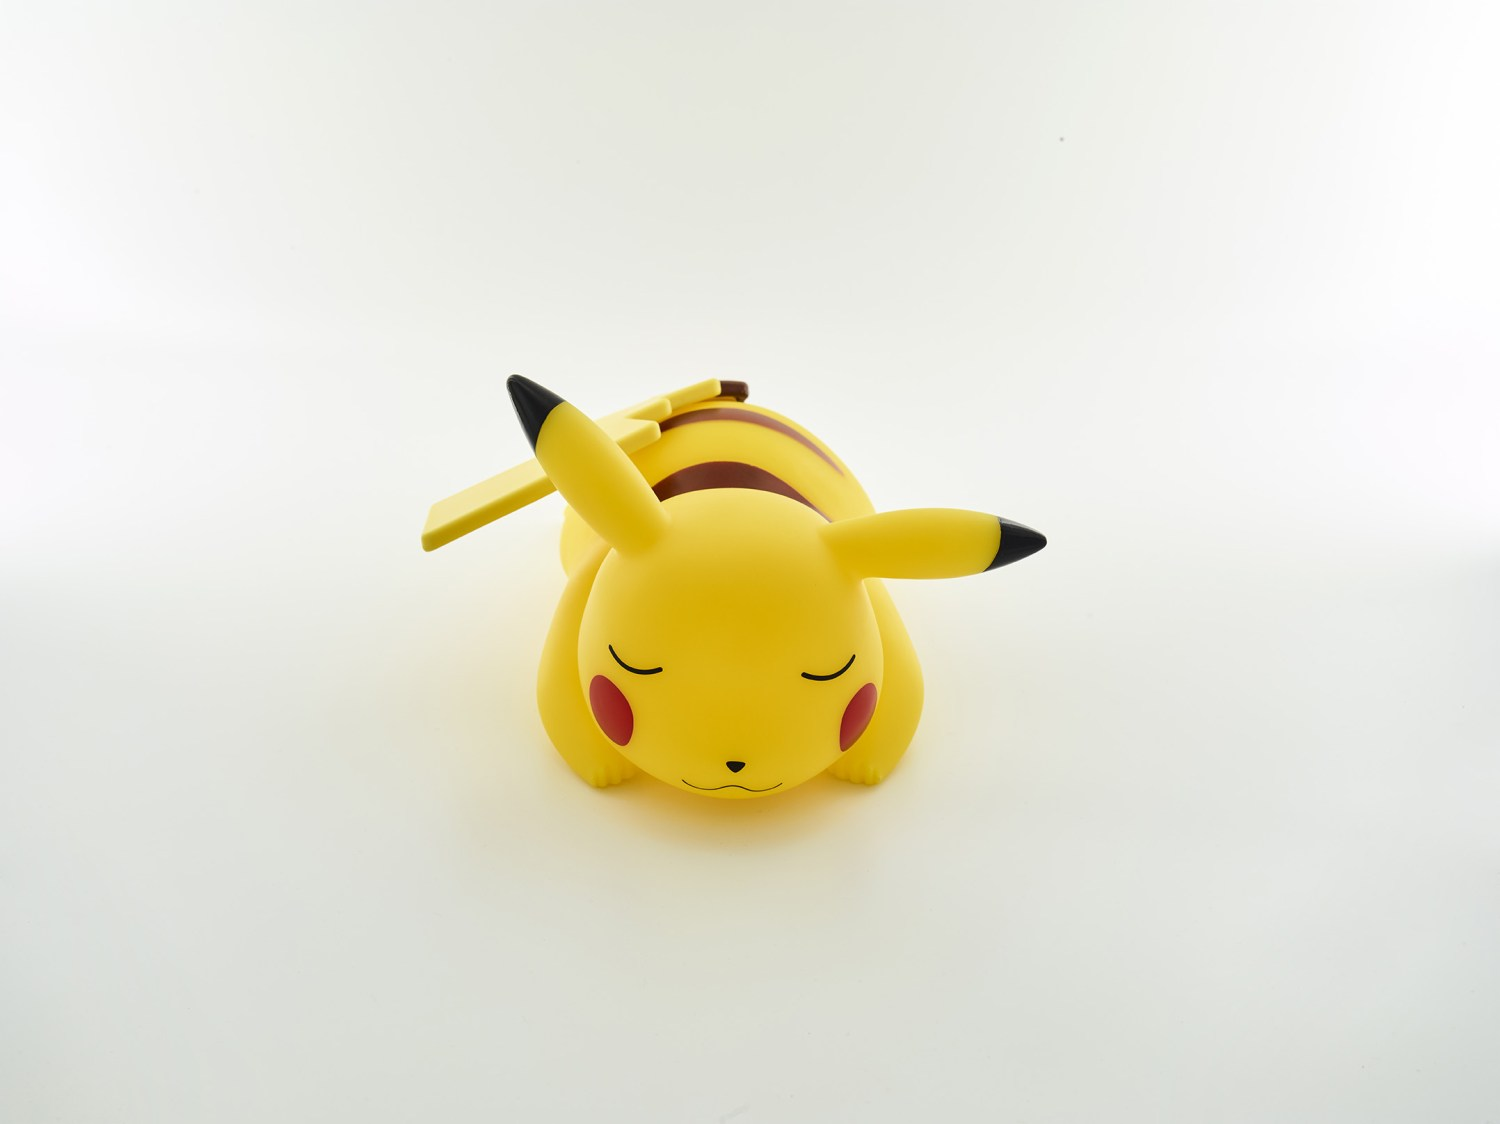 Pokémon pikachu LED Lamp 10in front view